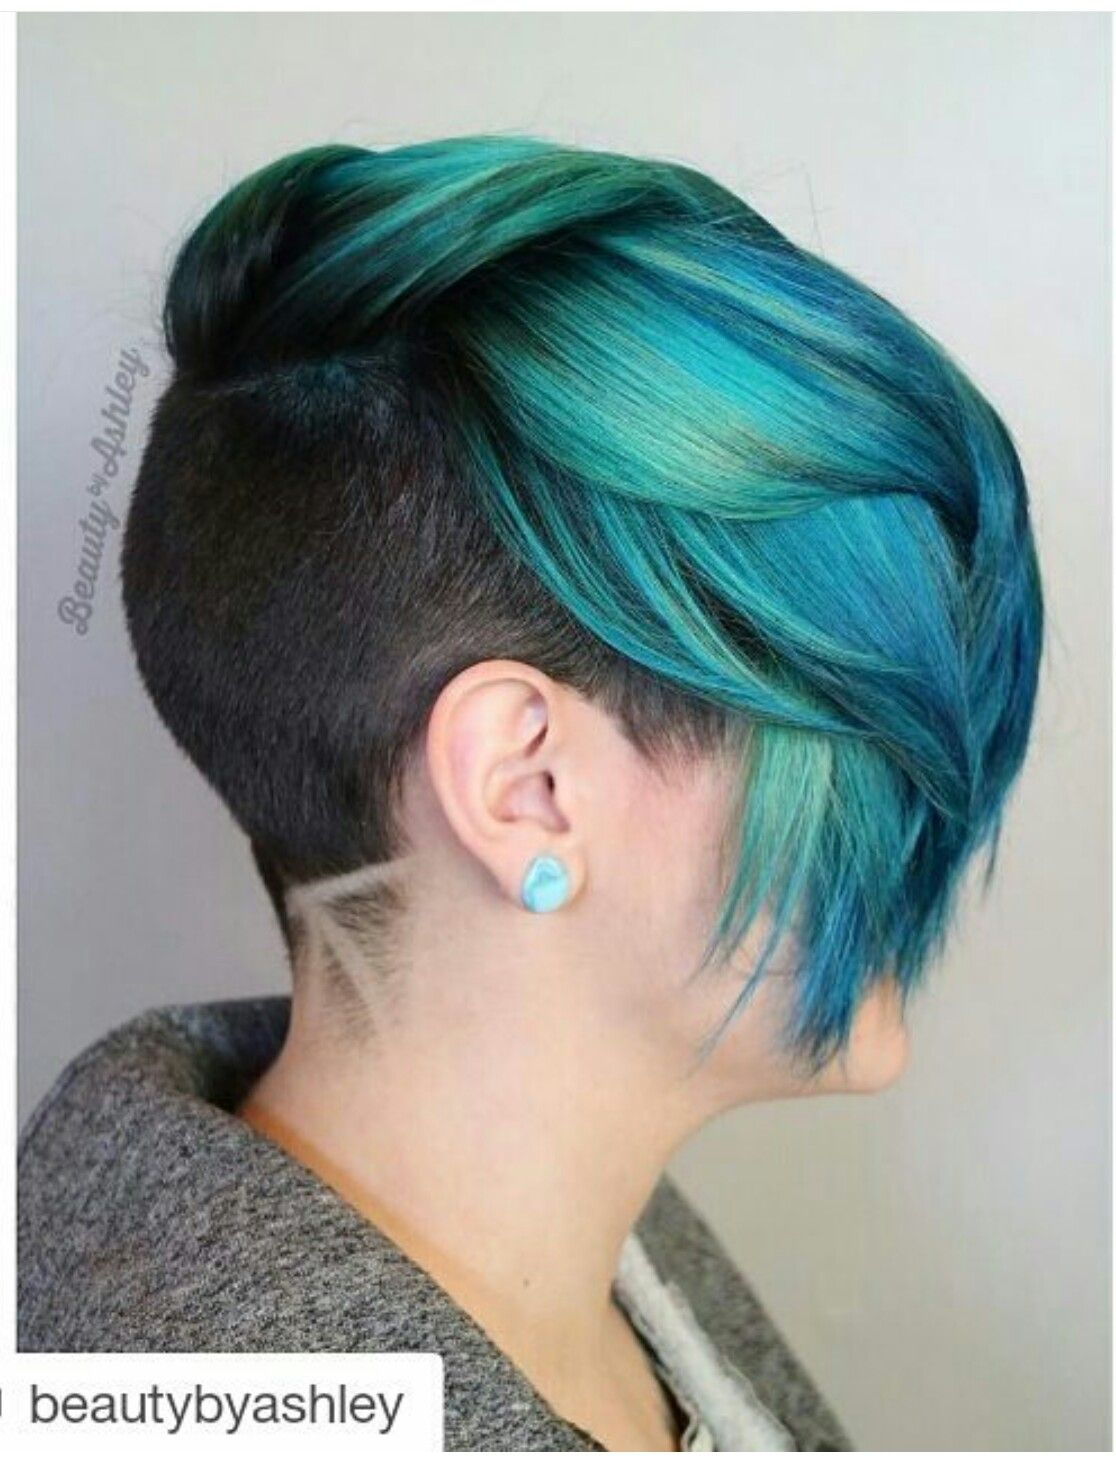 Turquoise Teal Green Dyed Hair With Shaved Sides And Back Short Hair Color Short Hair Styles Hair Styles